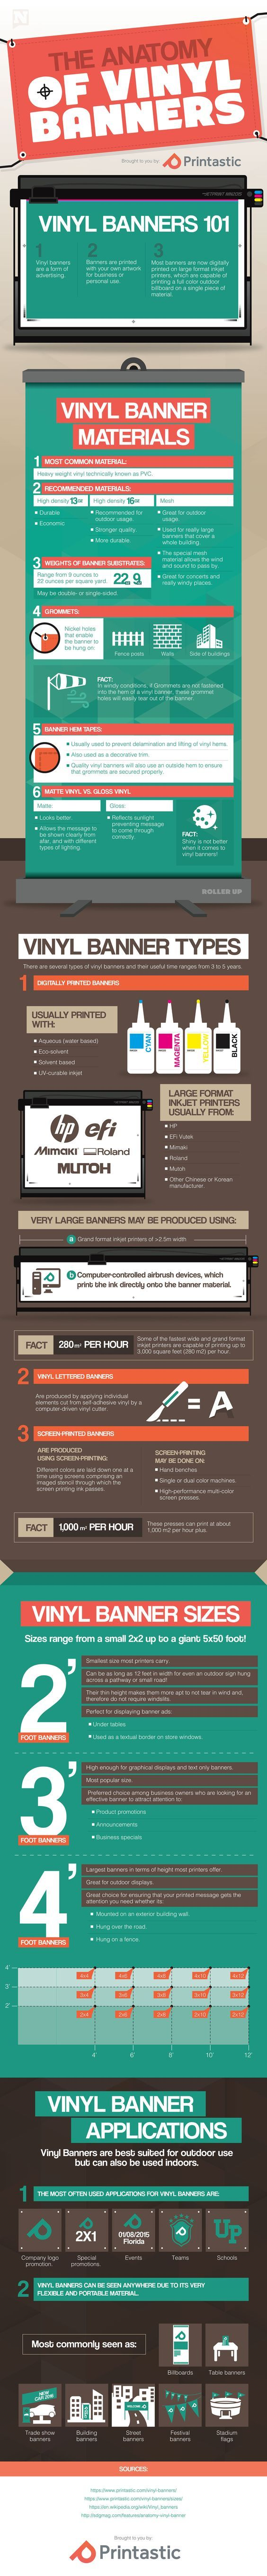 Great tips for getting the best use of your vinyl banner! More